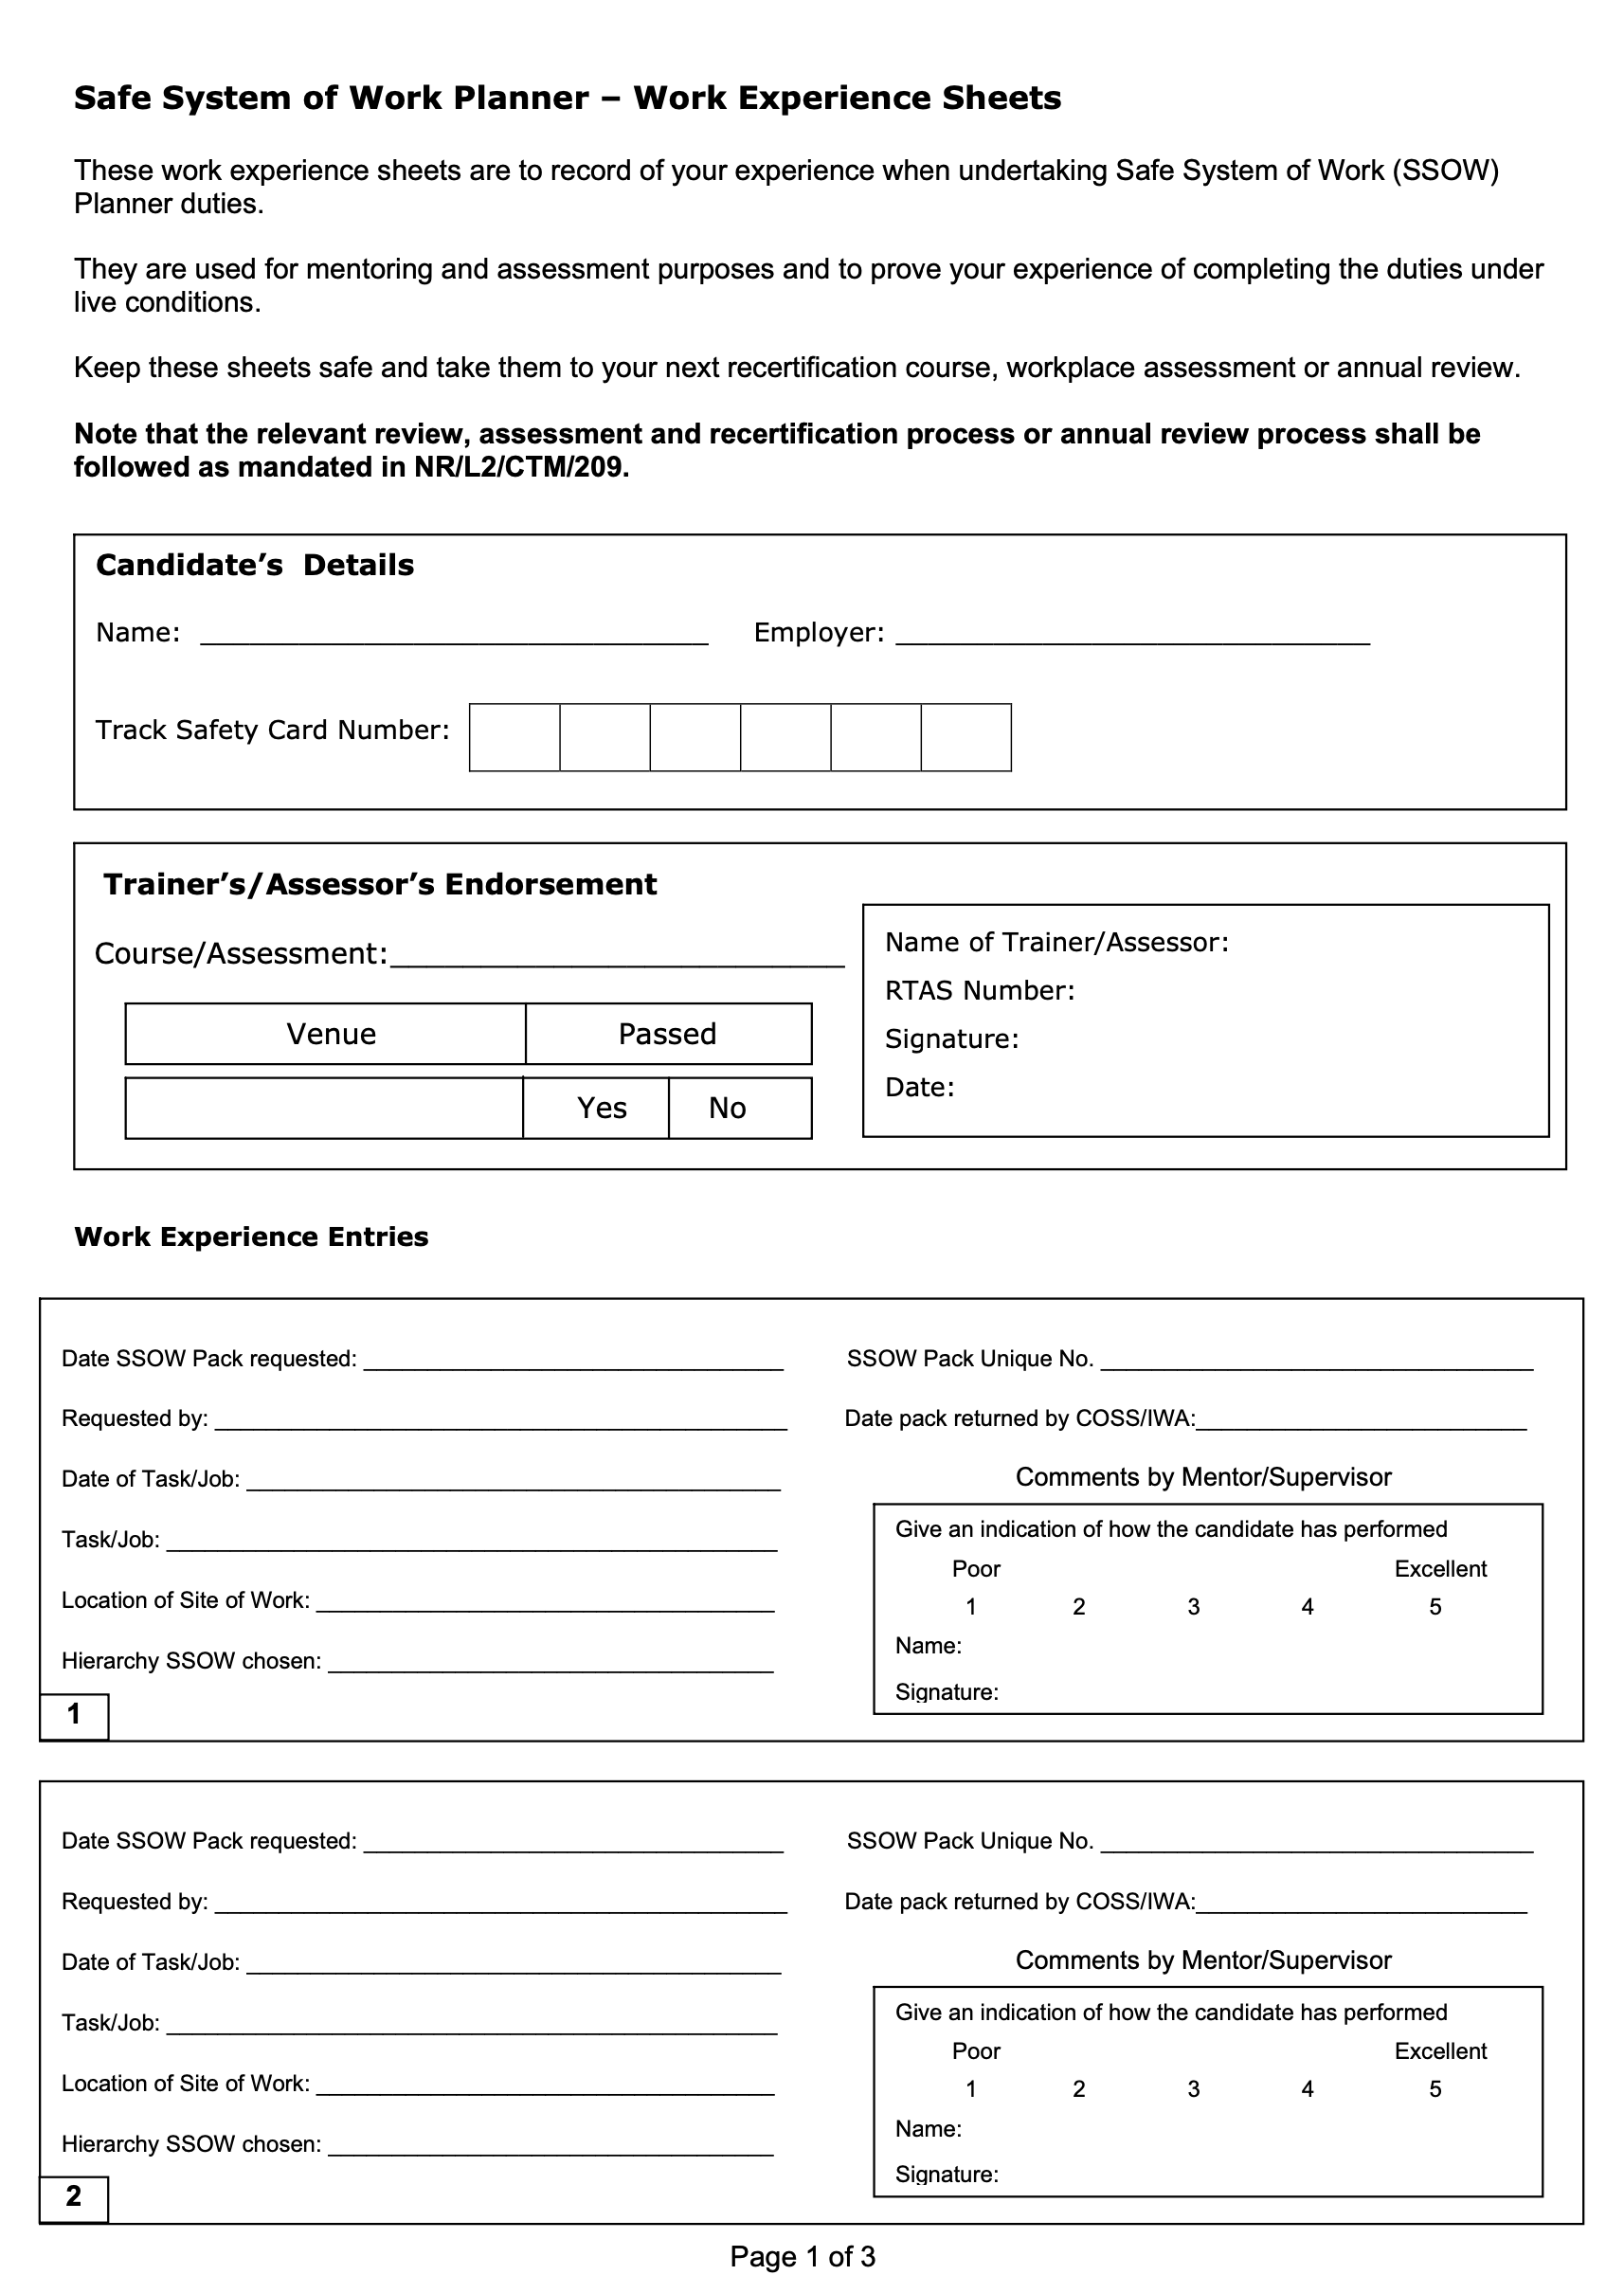 SSOW Planner Work Experience Sheets (Logbook) Cover